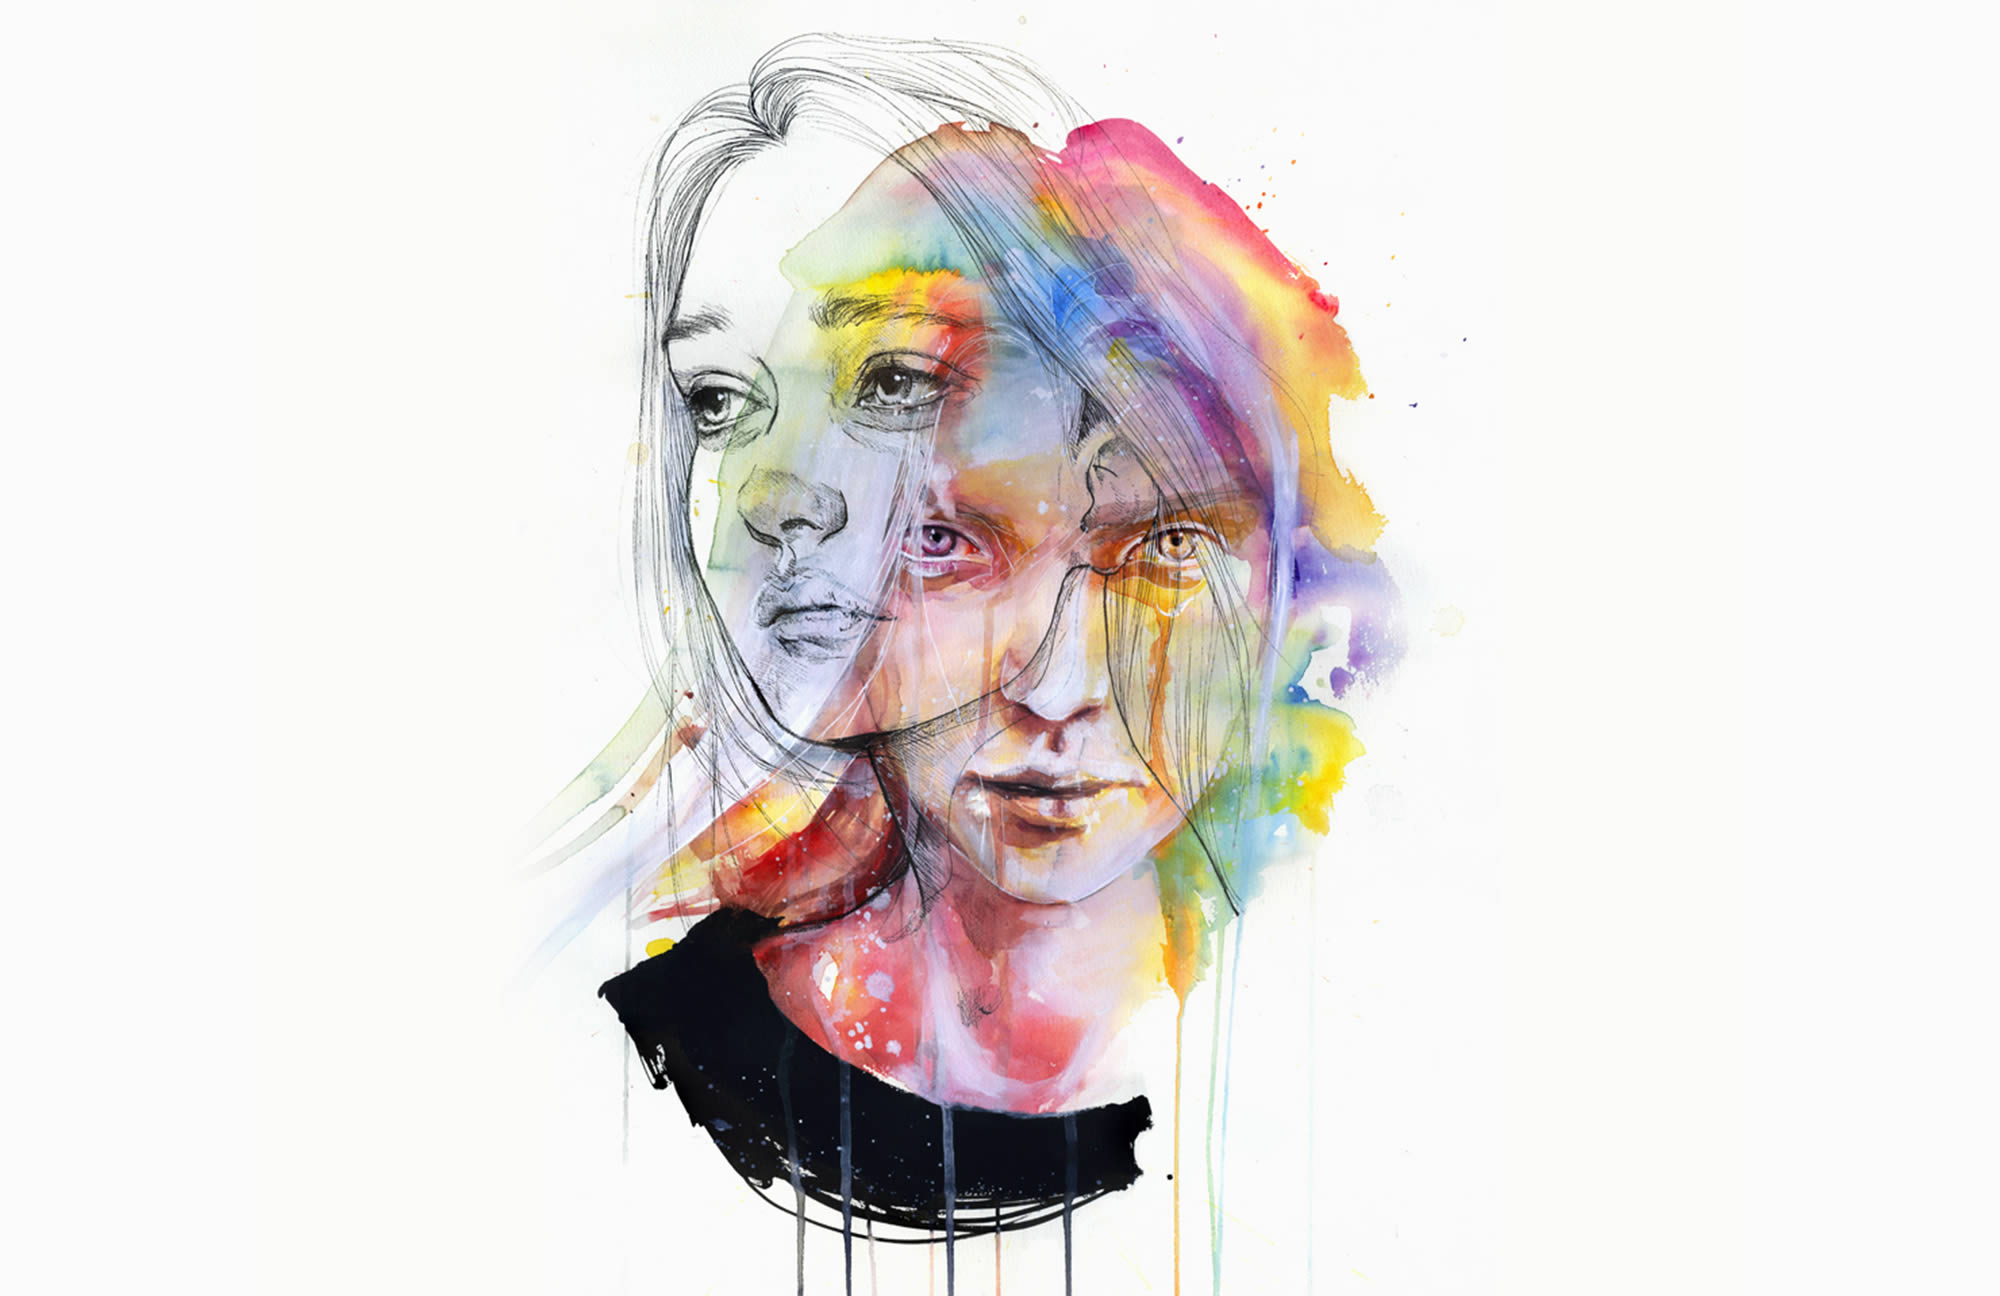 Agnes Cecile's Rainbow Watercolor Art from 2014-2015